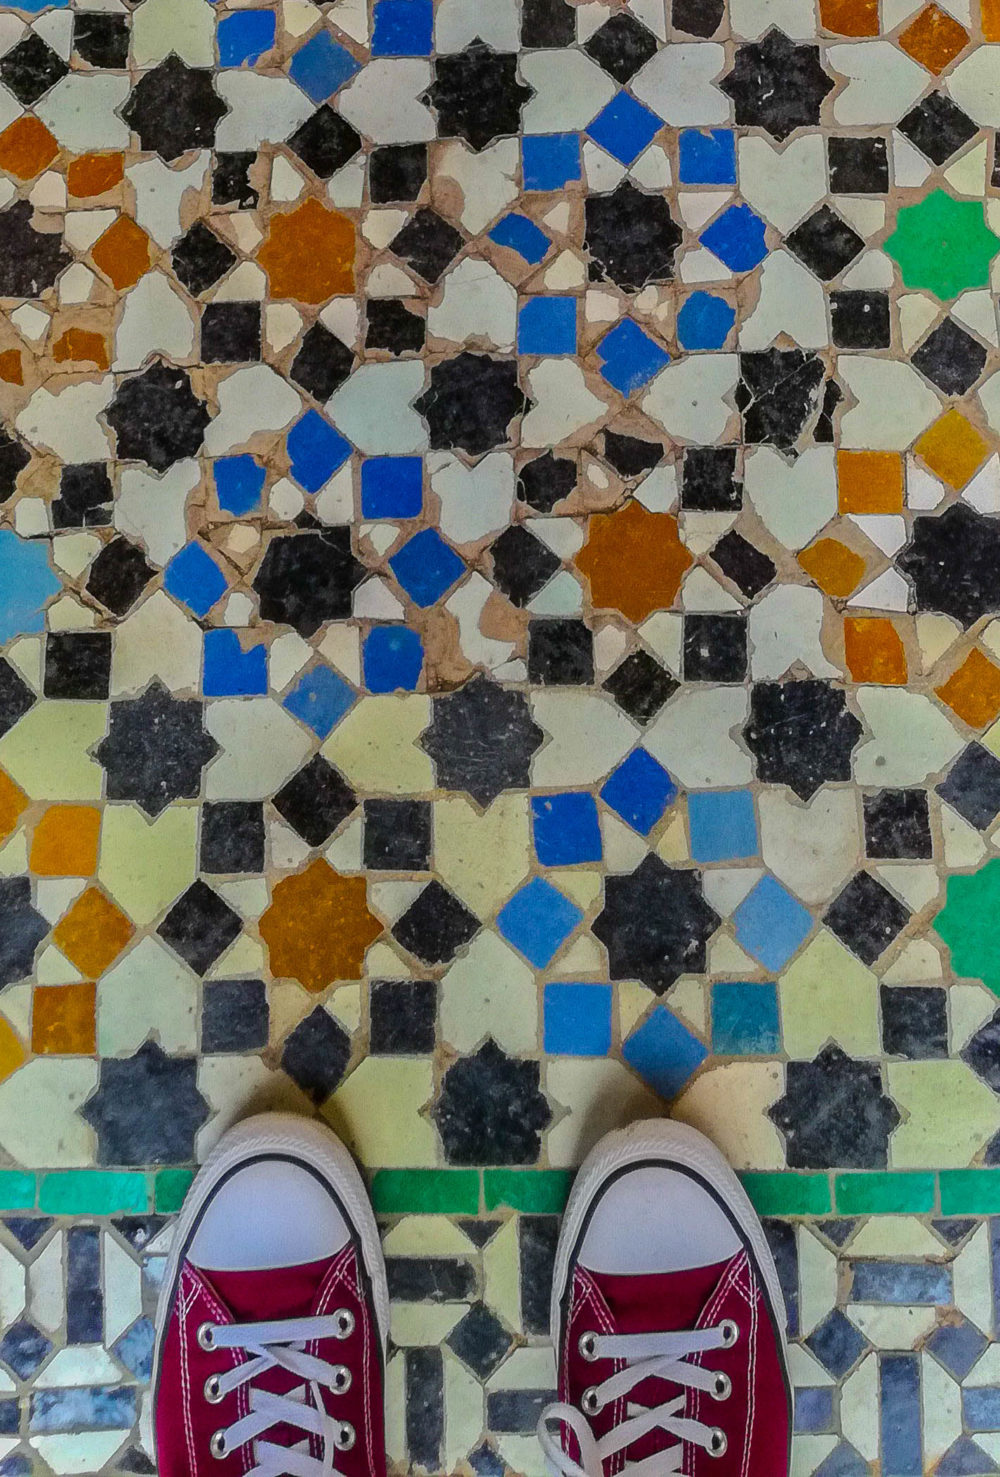 Marrakech Travel Tips: Comfy shoes